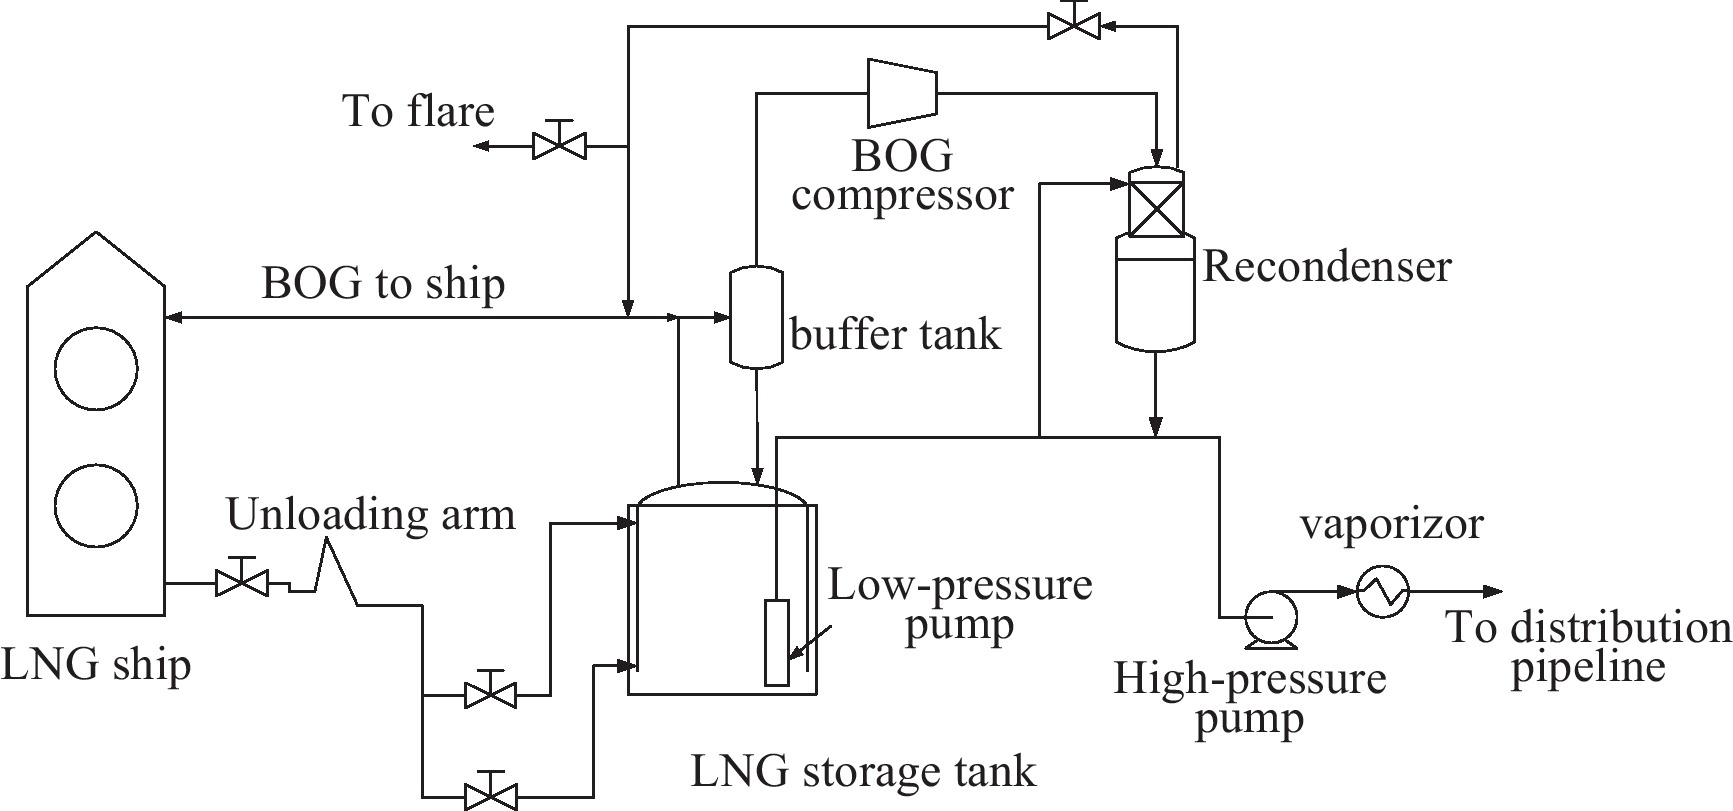 Flexible and cost effective optimization of bog boil off gas view hi res pooptronica Image collections